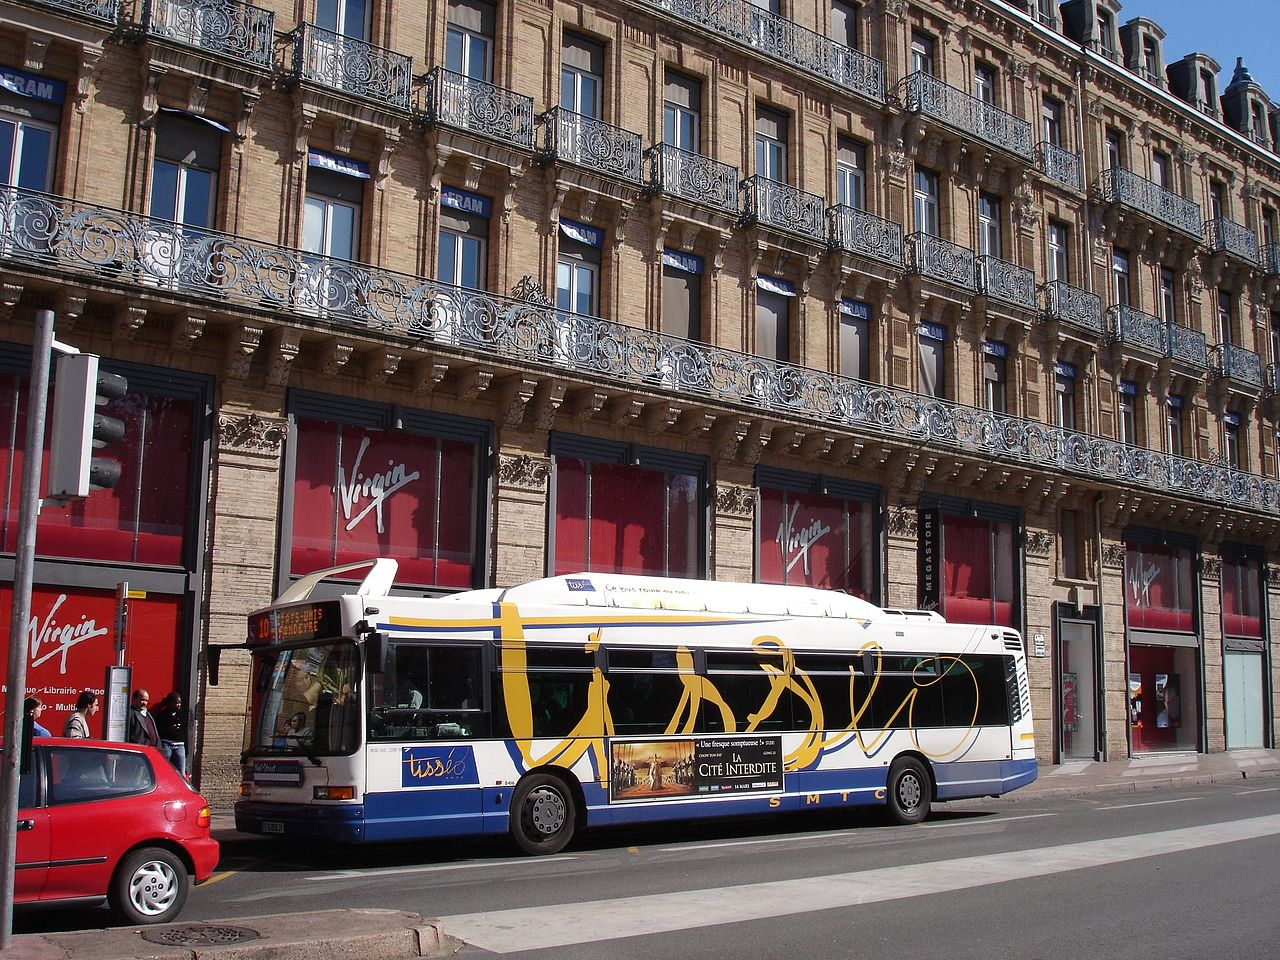 file france toulouse bus wikimedia commons. Black Bedroom Furniture Sets. Home Design Ideas